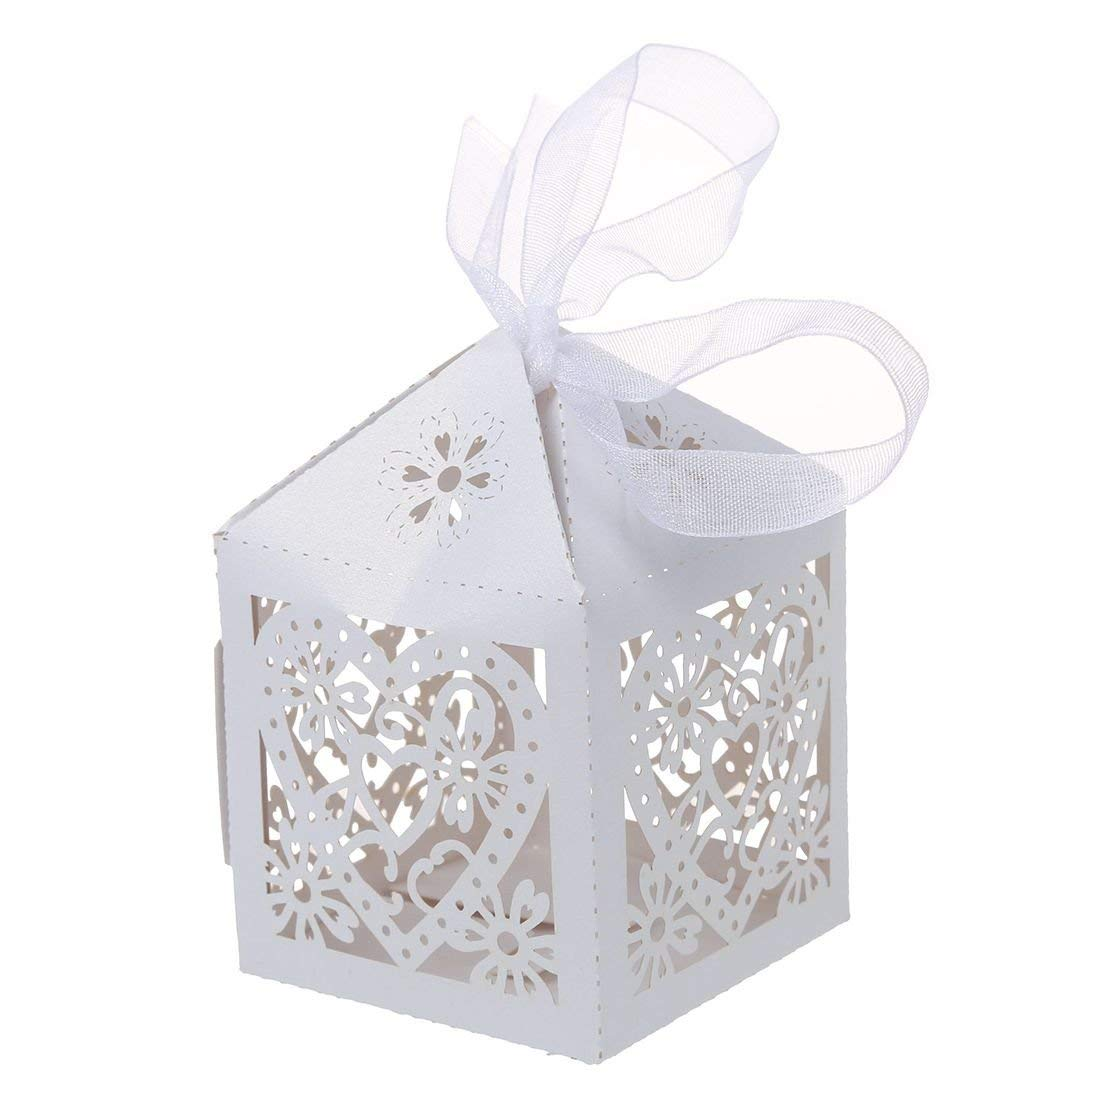 Candy Boxes - SODIAL(R)50pcs Love Heart Laser Cut Gift Candy Boxes Wedding Party Favor With Ribbon White